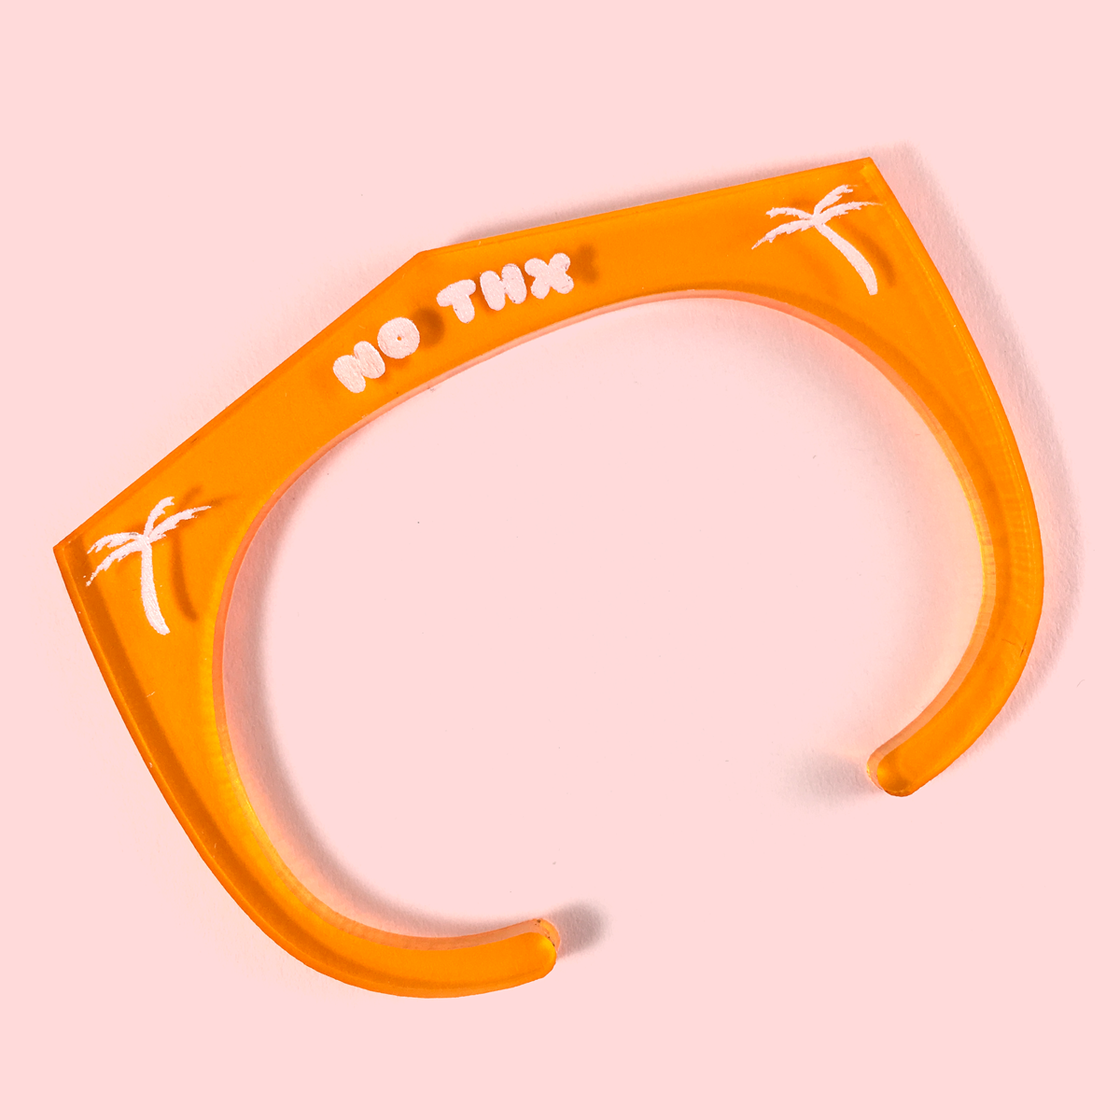 Image of NO THX acrylic cuff bracelet